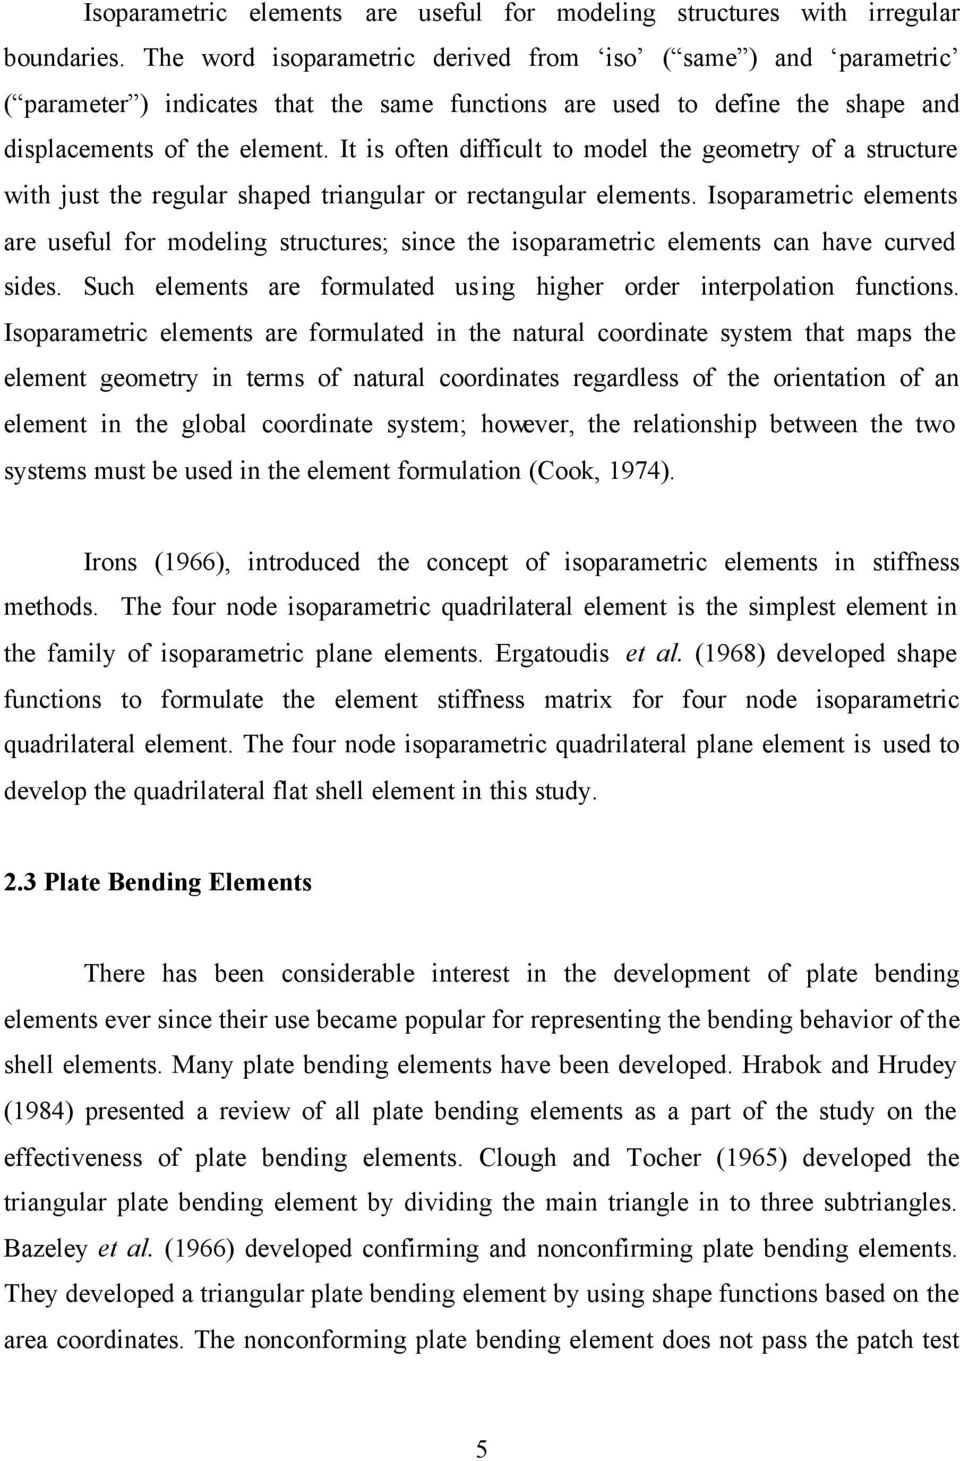 Development of Membrane, Plate and Flat Shell Elements in